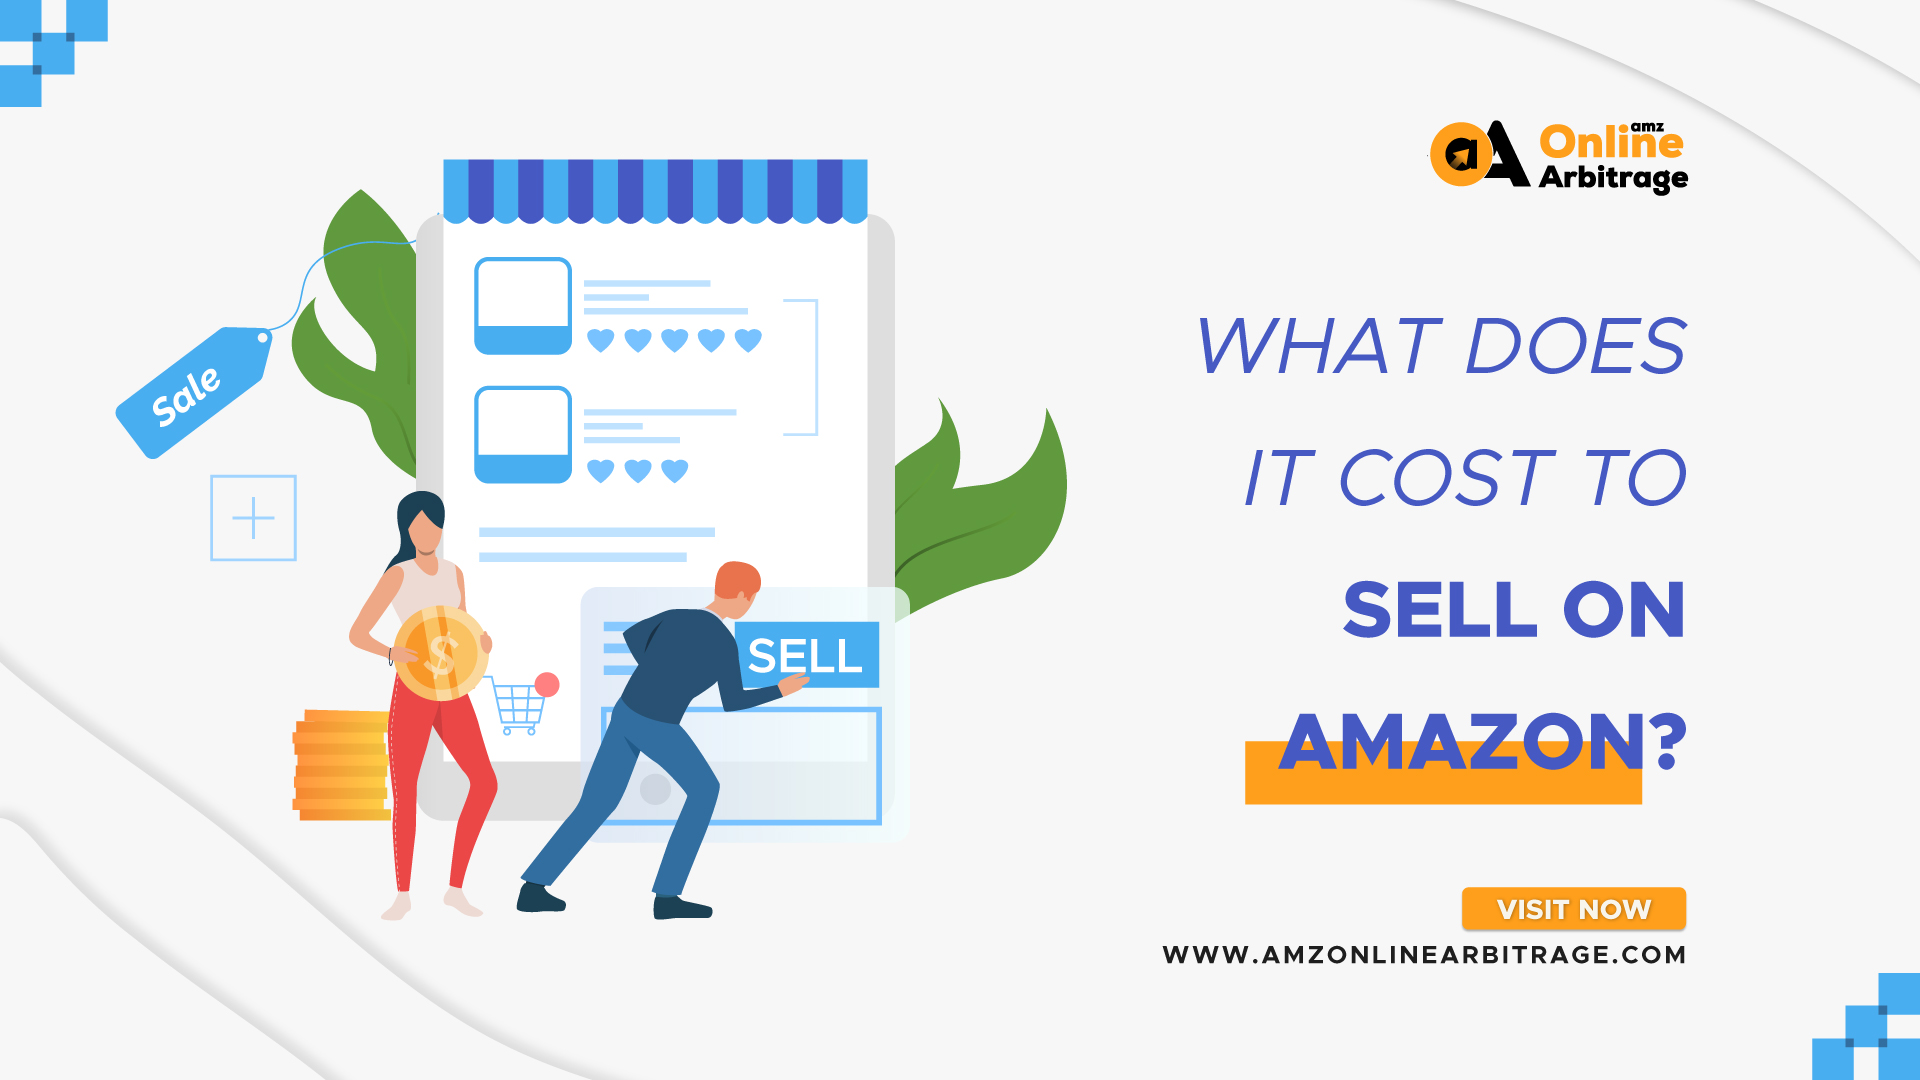 WHAT DOES IT COST TO SELL ON AMAZON?